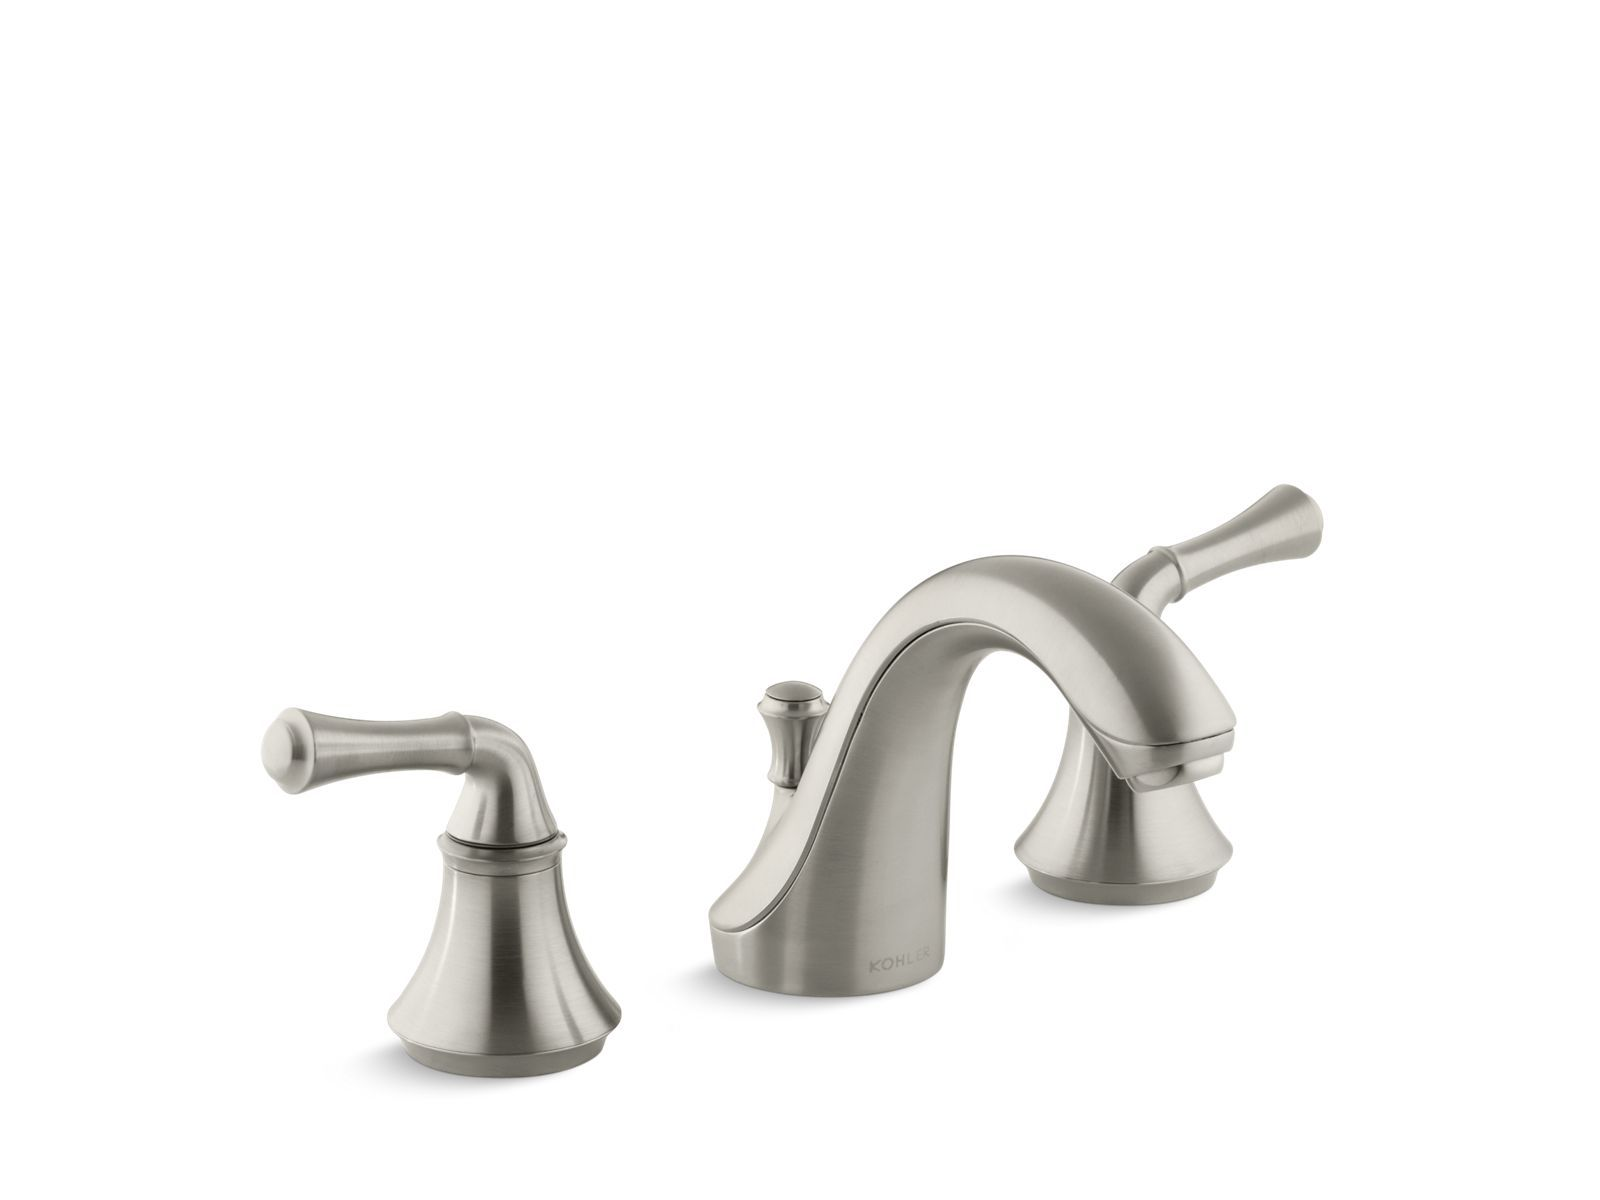 Forté Widespread Sink Faucet with Traditional Handles | K-10272-4A ...